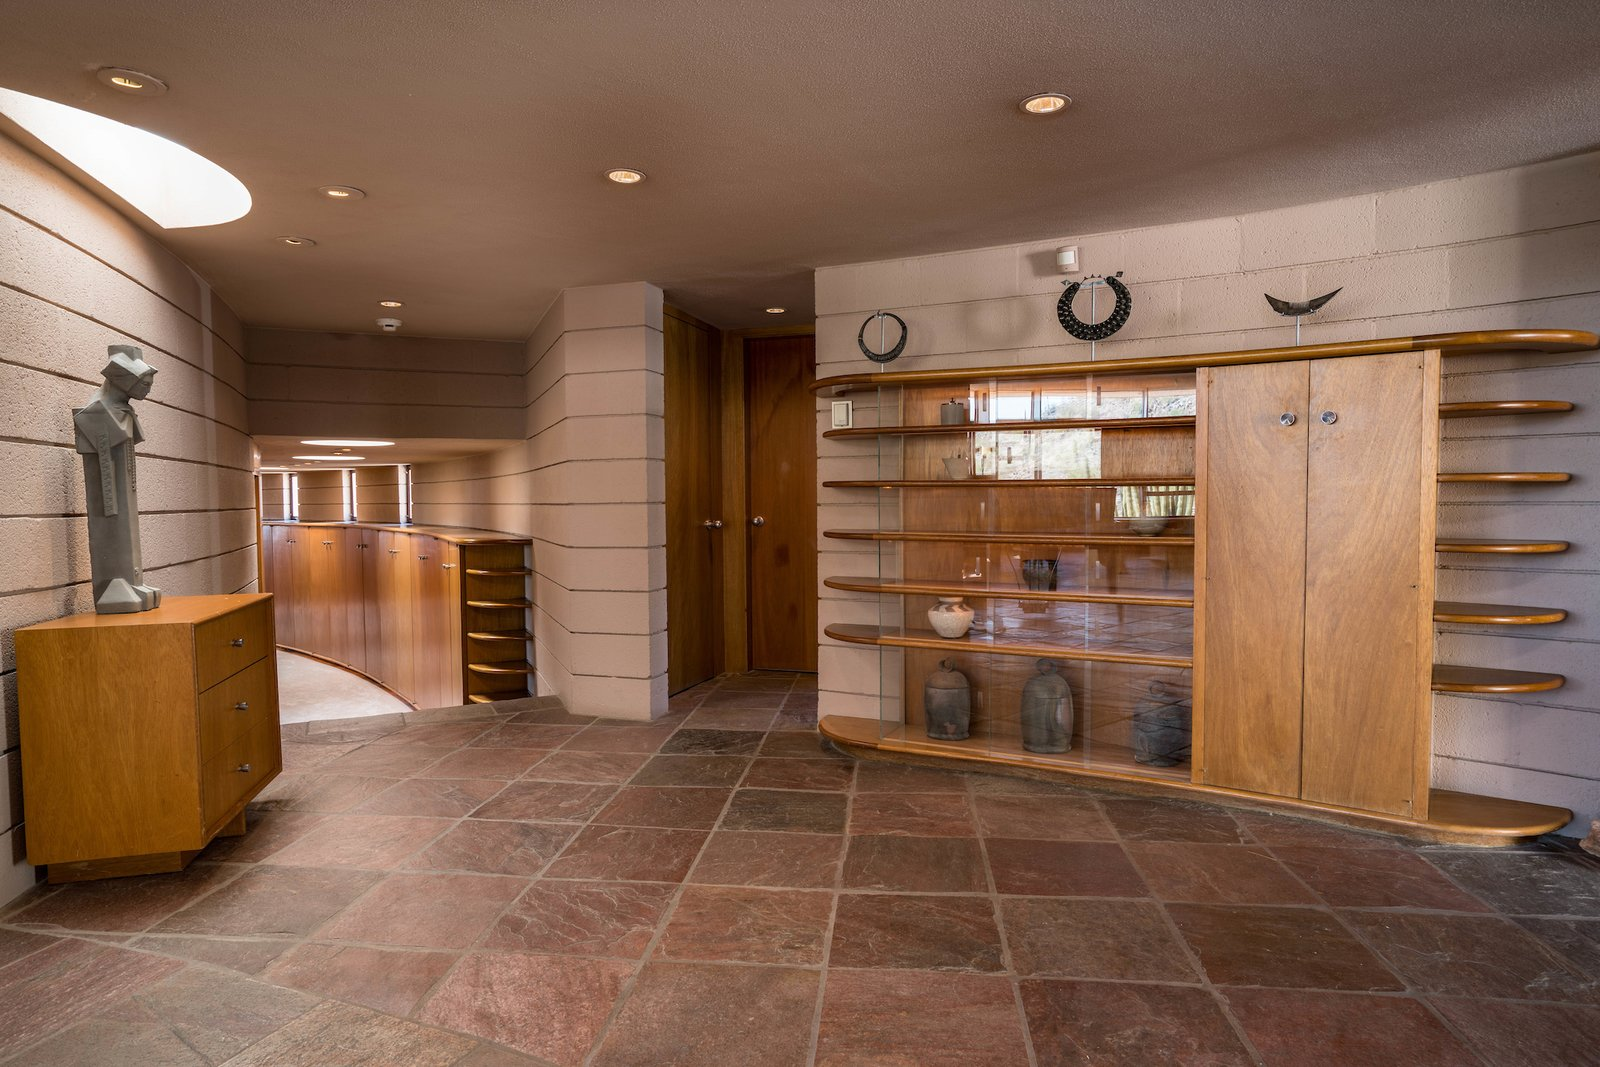 Storage Room and Shelves Storage Type  Photo 4 of 15 in The Last House Designed by Frank Lloyd Wright Is Being Auctioned Without Reserve